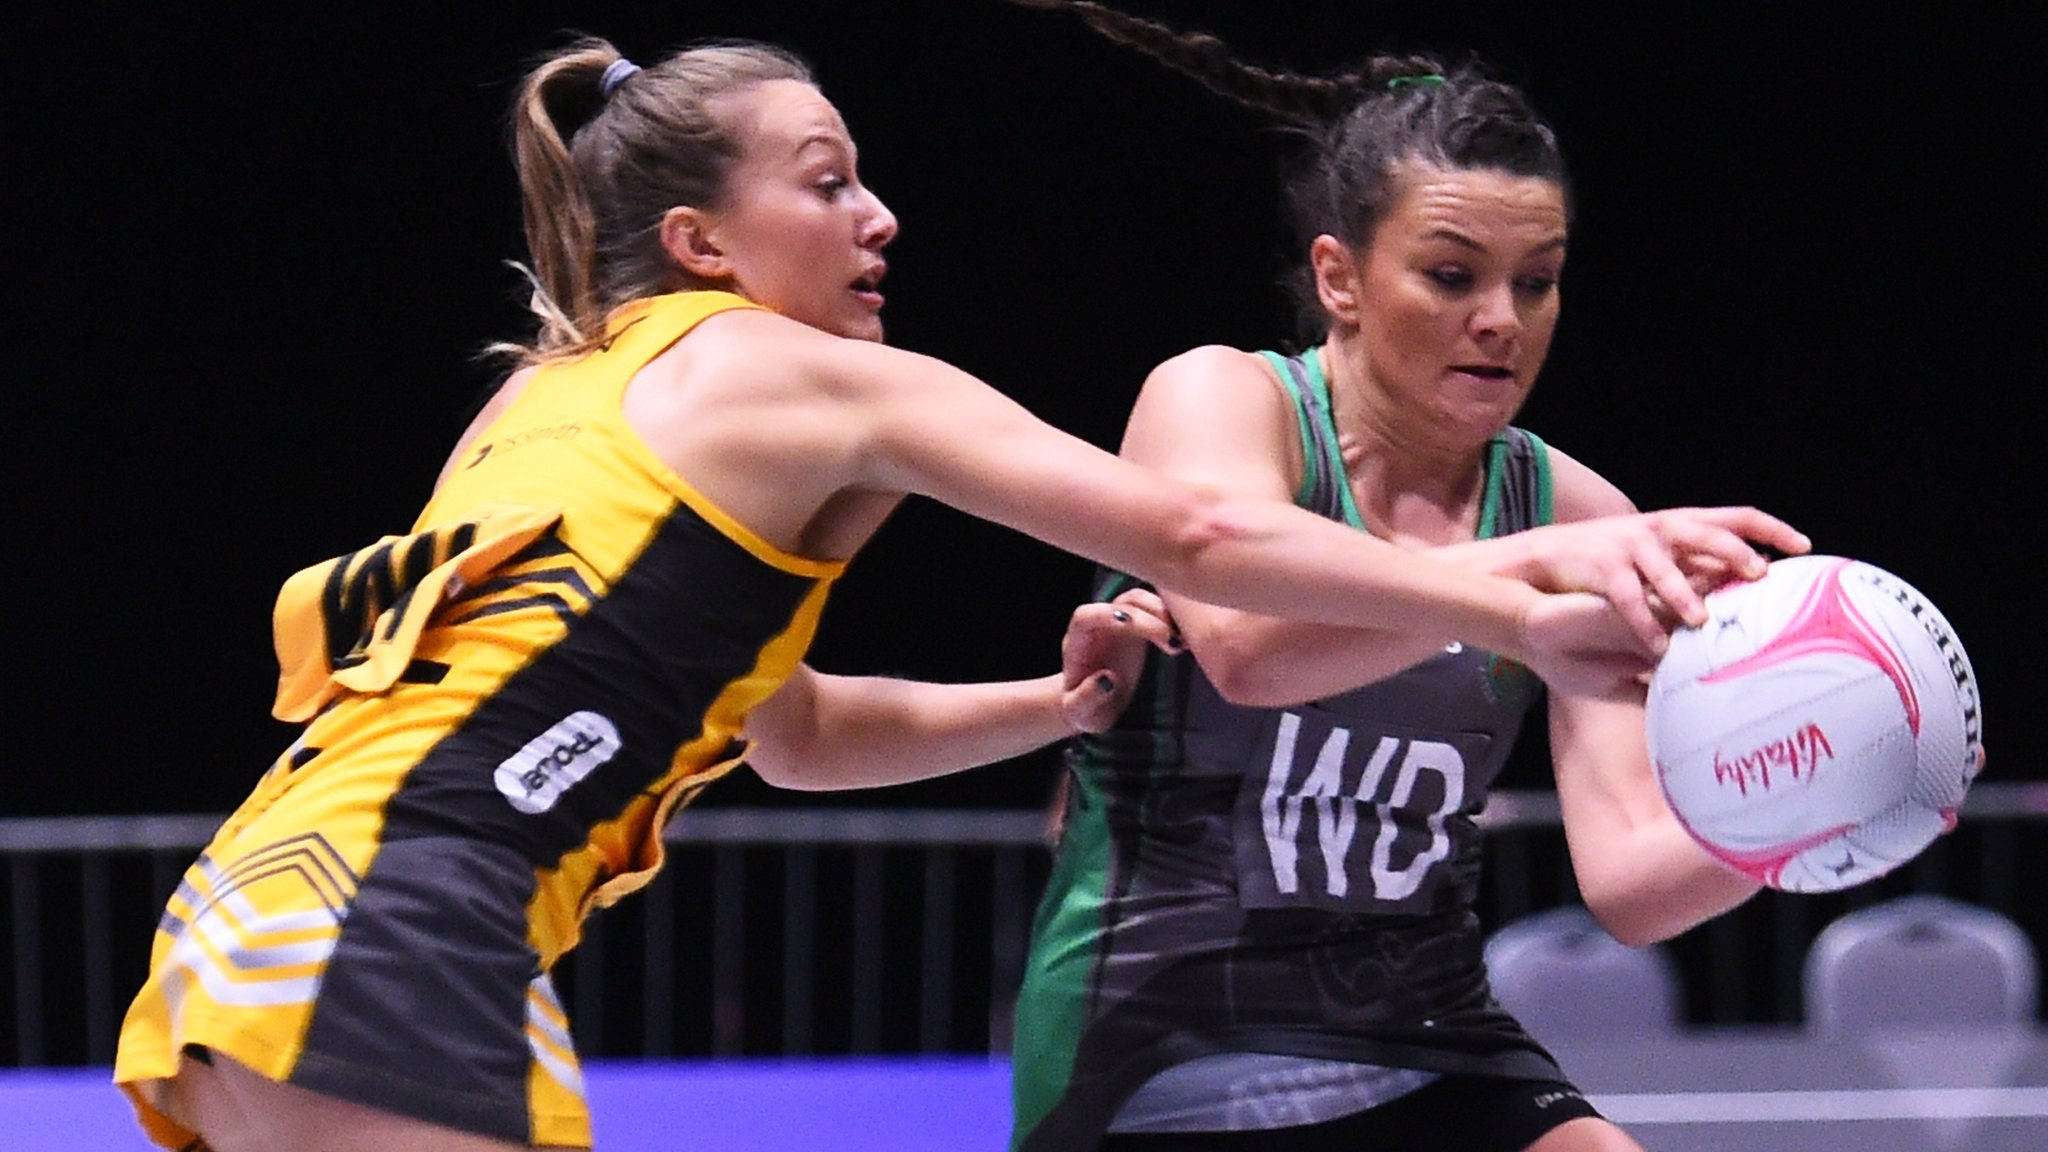 Netball Superleague 2019: Wasps beat Dragons seal play-off spot